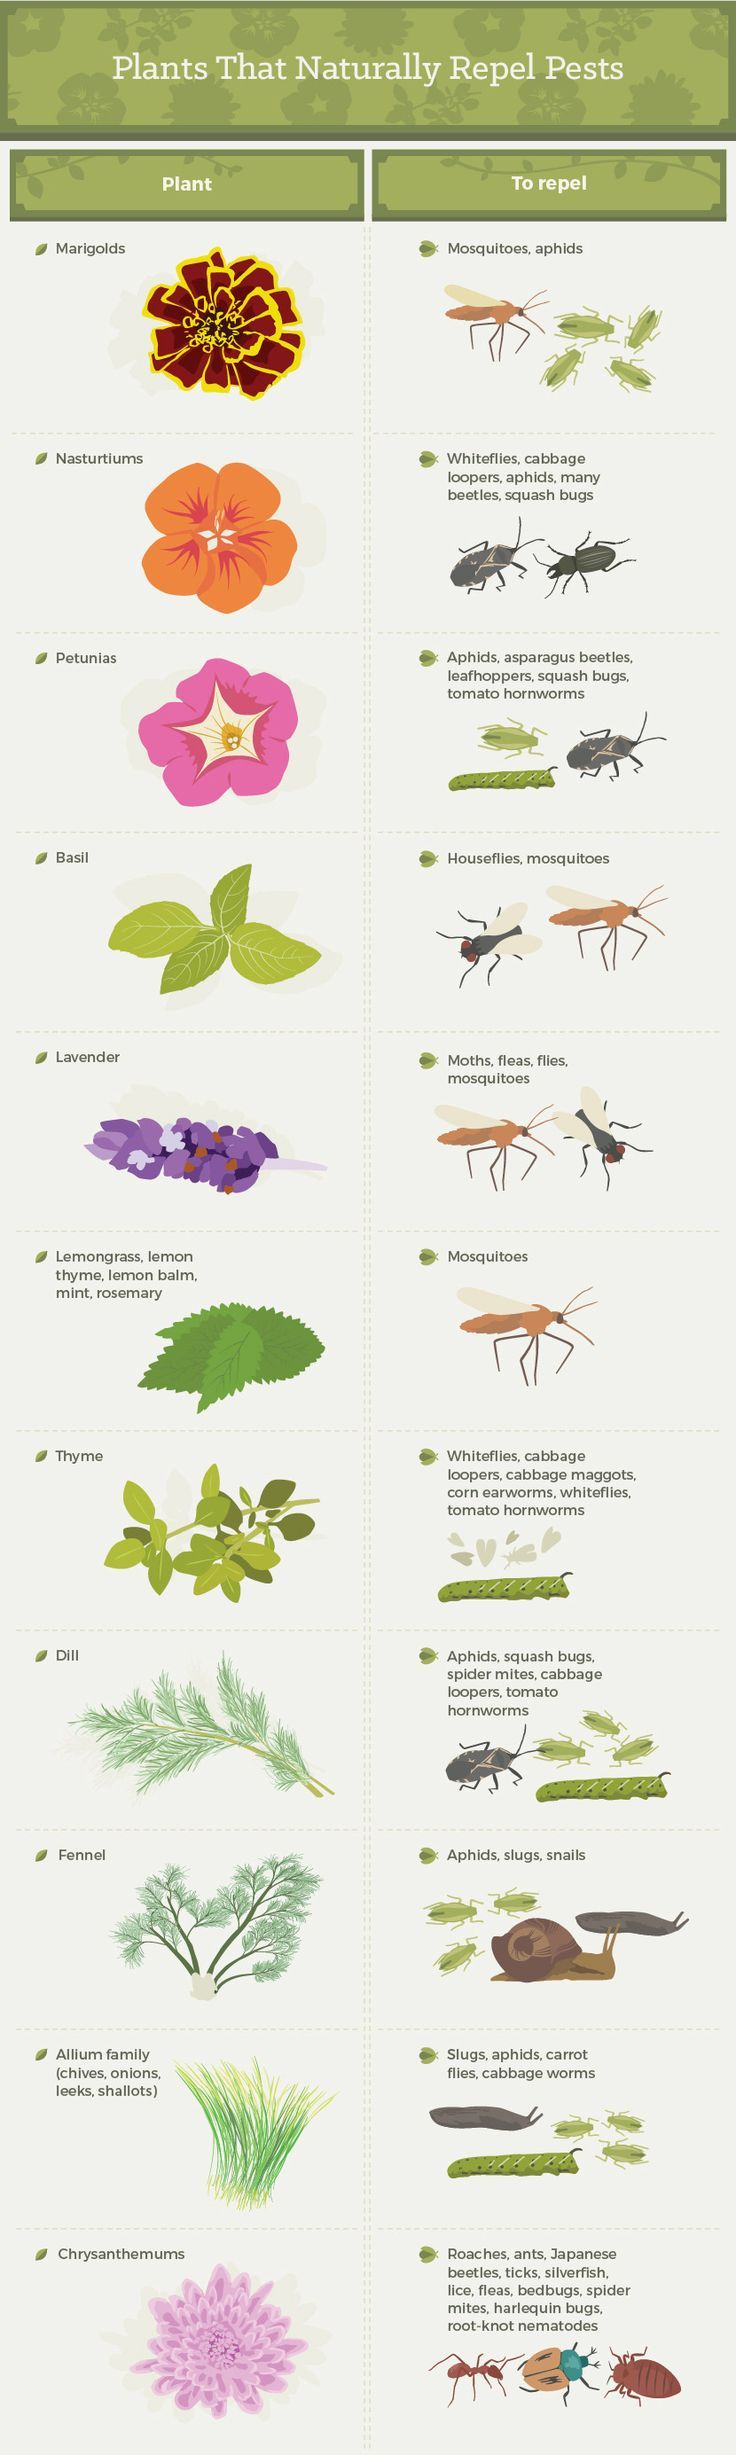 Plants that Naturally Repel Pests #Backyard #Garden #Gardening